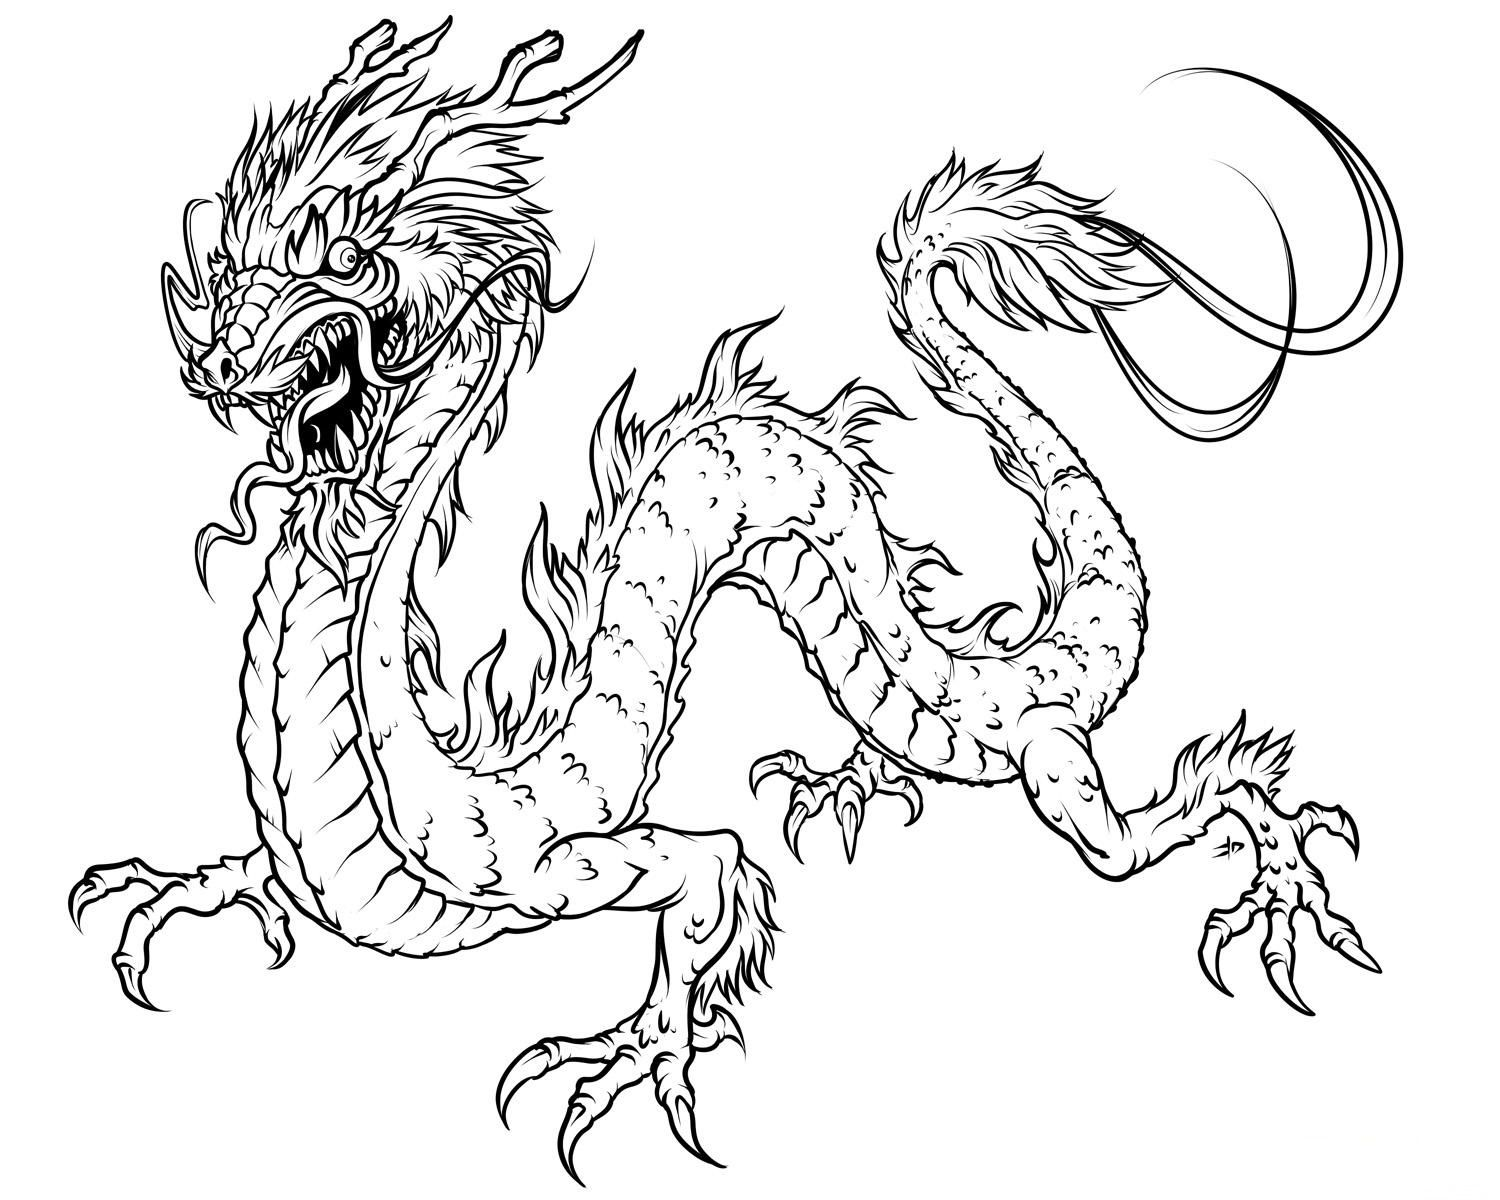 Free printable japanese coloring pages for adults - Fanacy Printable Coloring Pages For Adults Free Printable Dragon Coloring Pages For Kids